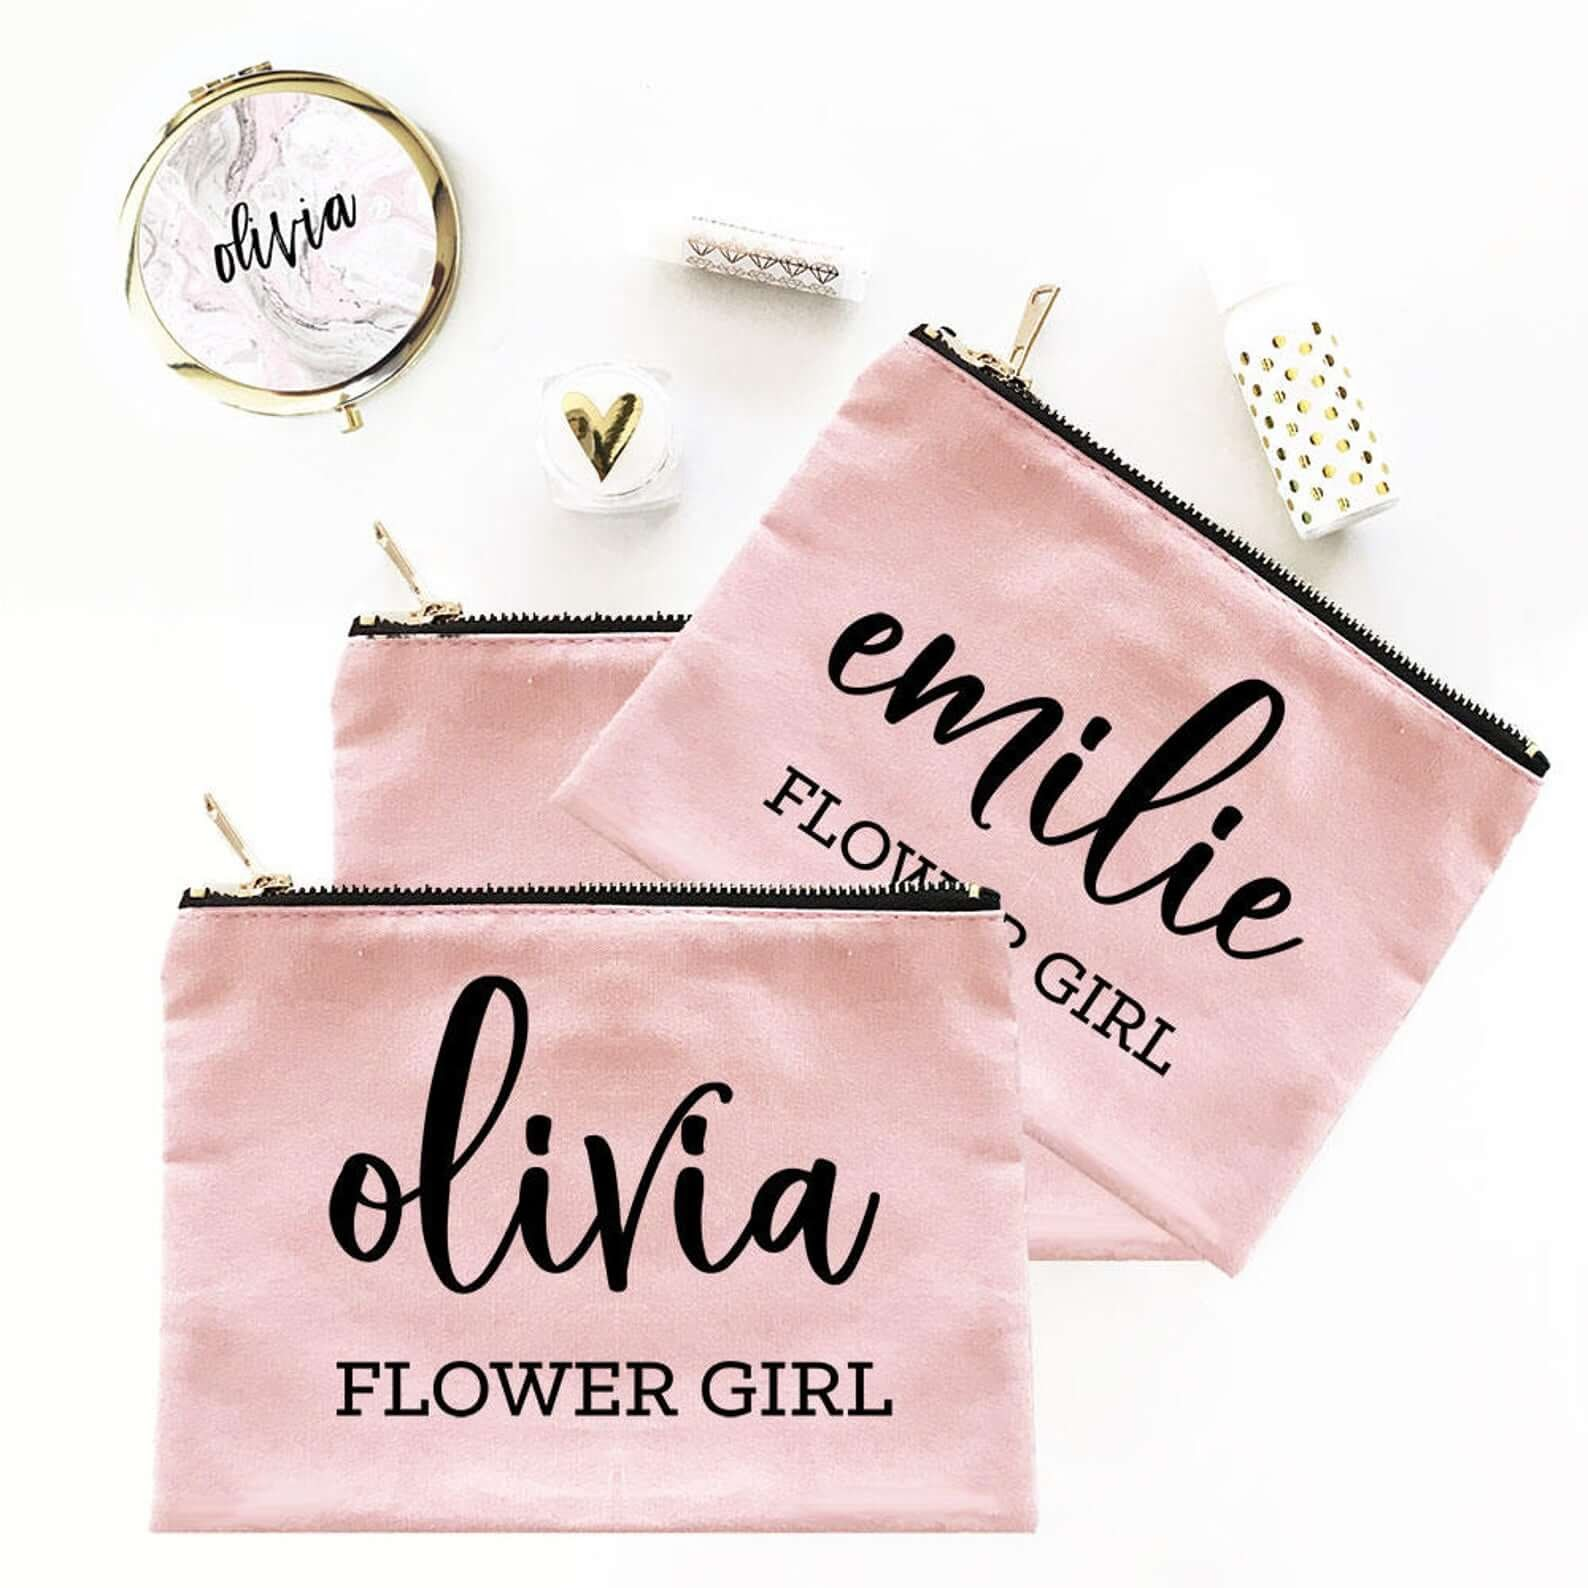 Flower girl bag with name on it